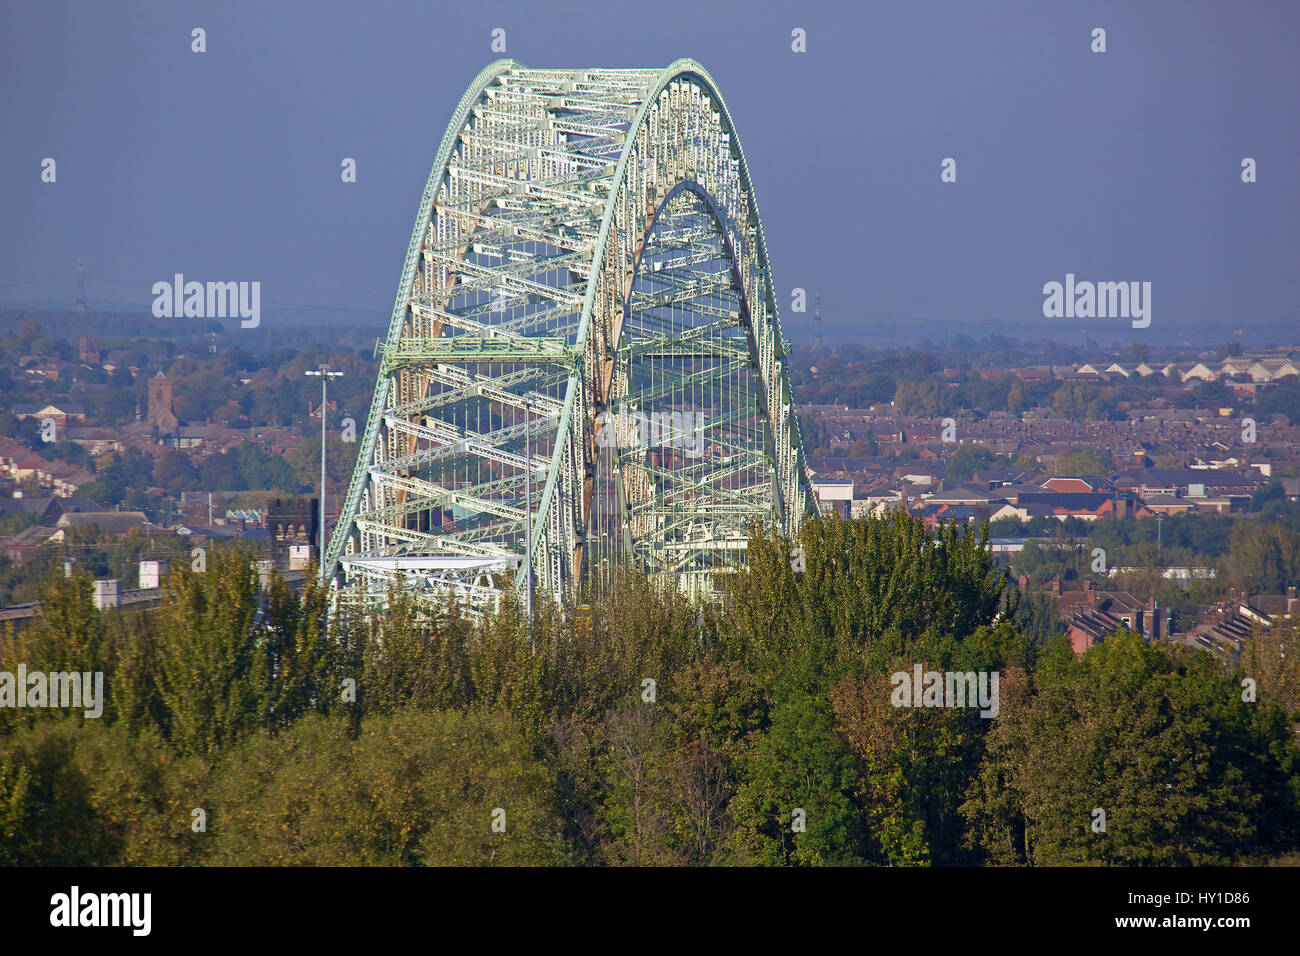 The massive arch of the Queensway bridge across the river Mersey between Runcorn and Widnes in Cheshire. Seen from - Stock Image